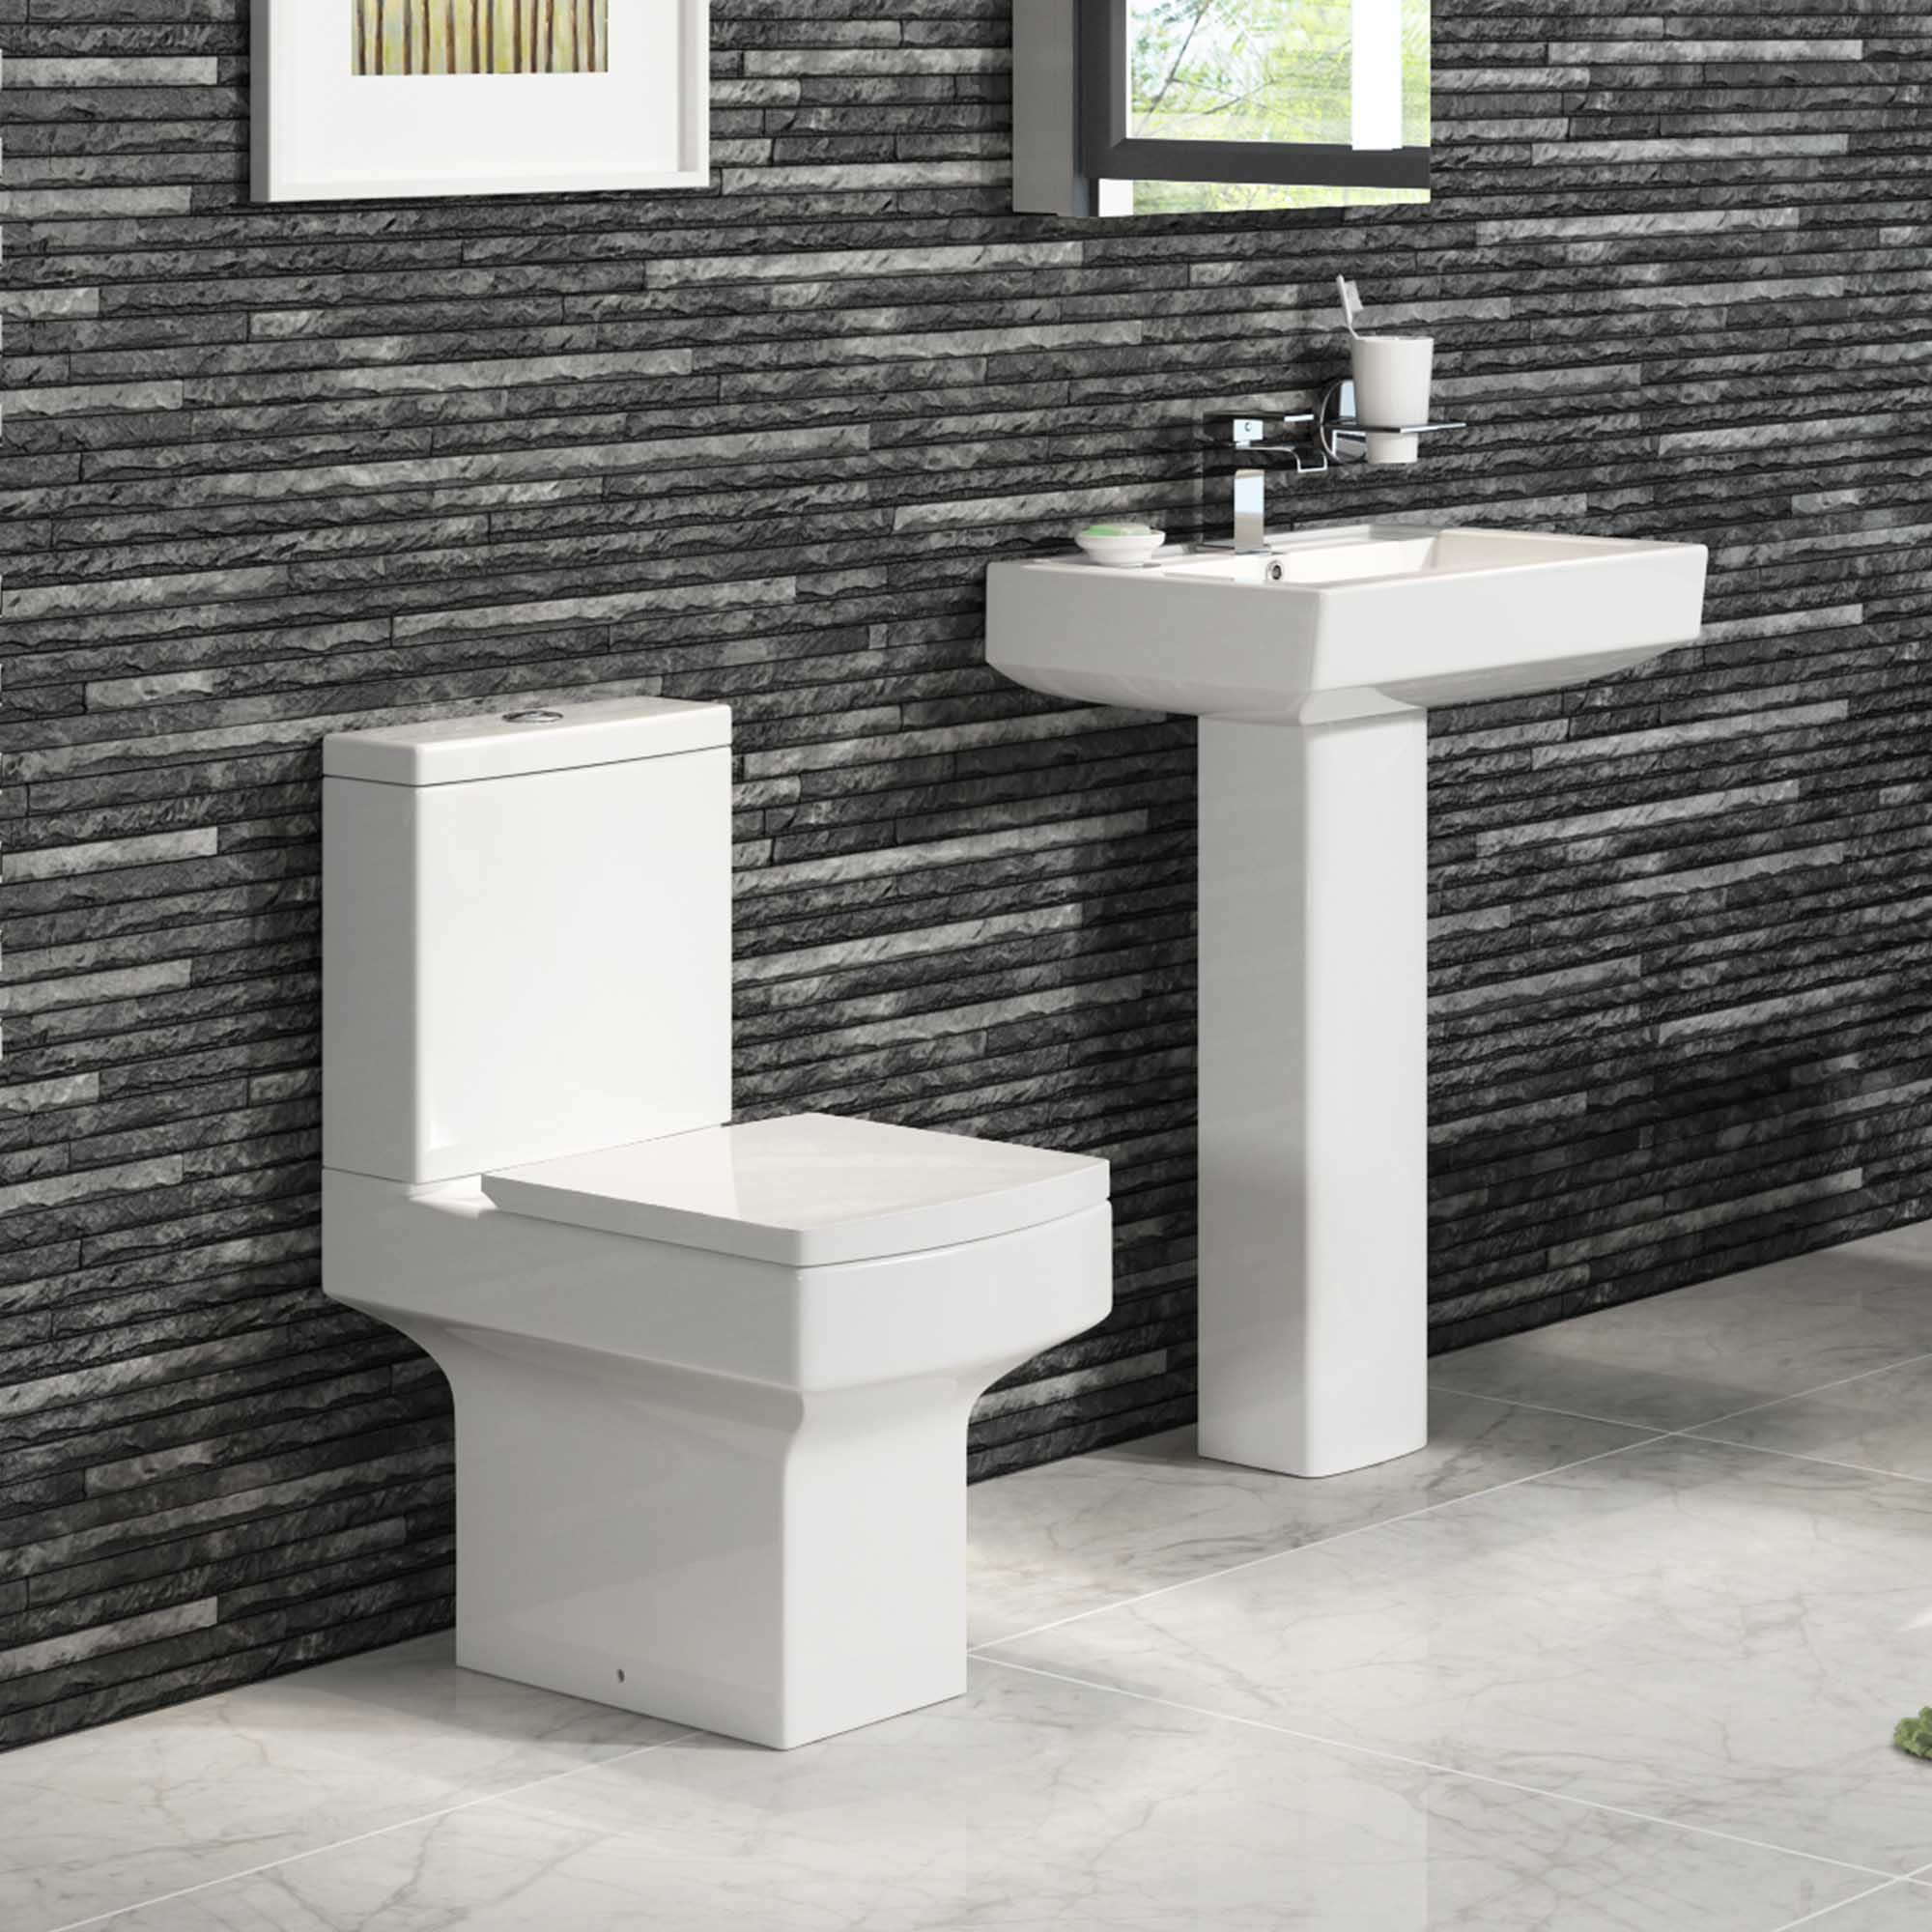 modern close coupled square toilet basin pedestal complete bathroom suite ebay. Black Bedroom Furniture Sets. Home Design Ideas